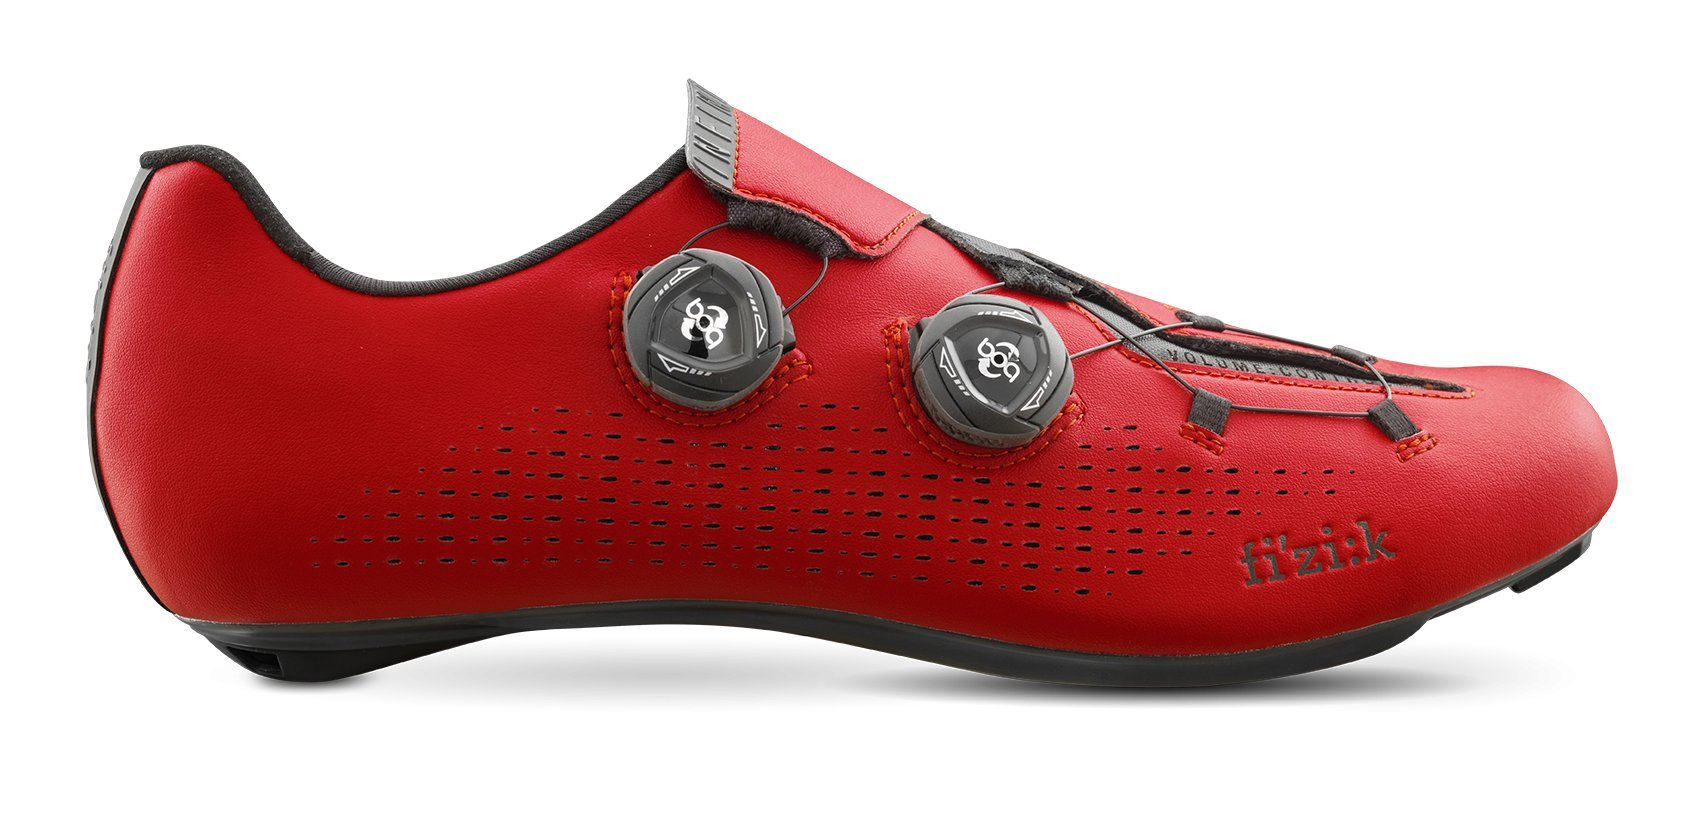 Fizik R1 Infinito Men's Road Cycling Shoes - Damaged Packaging